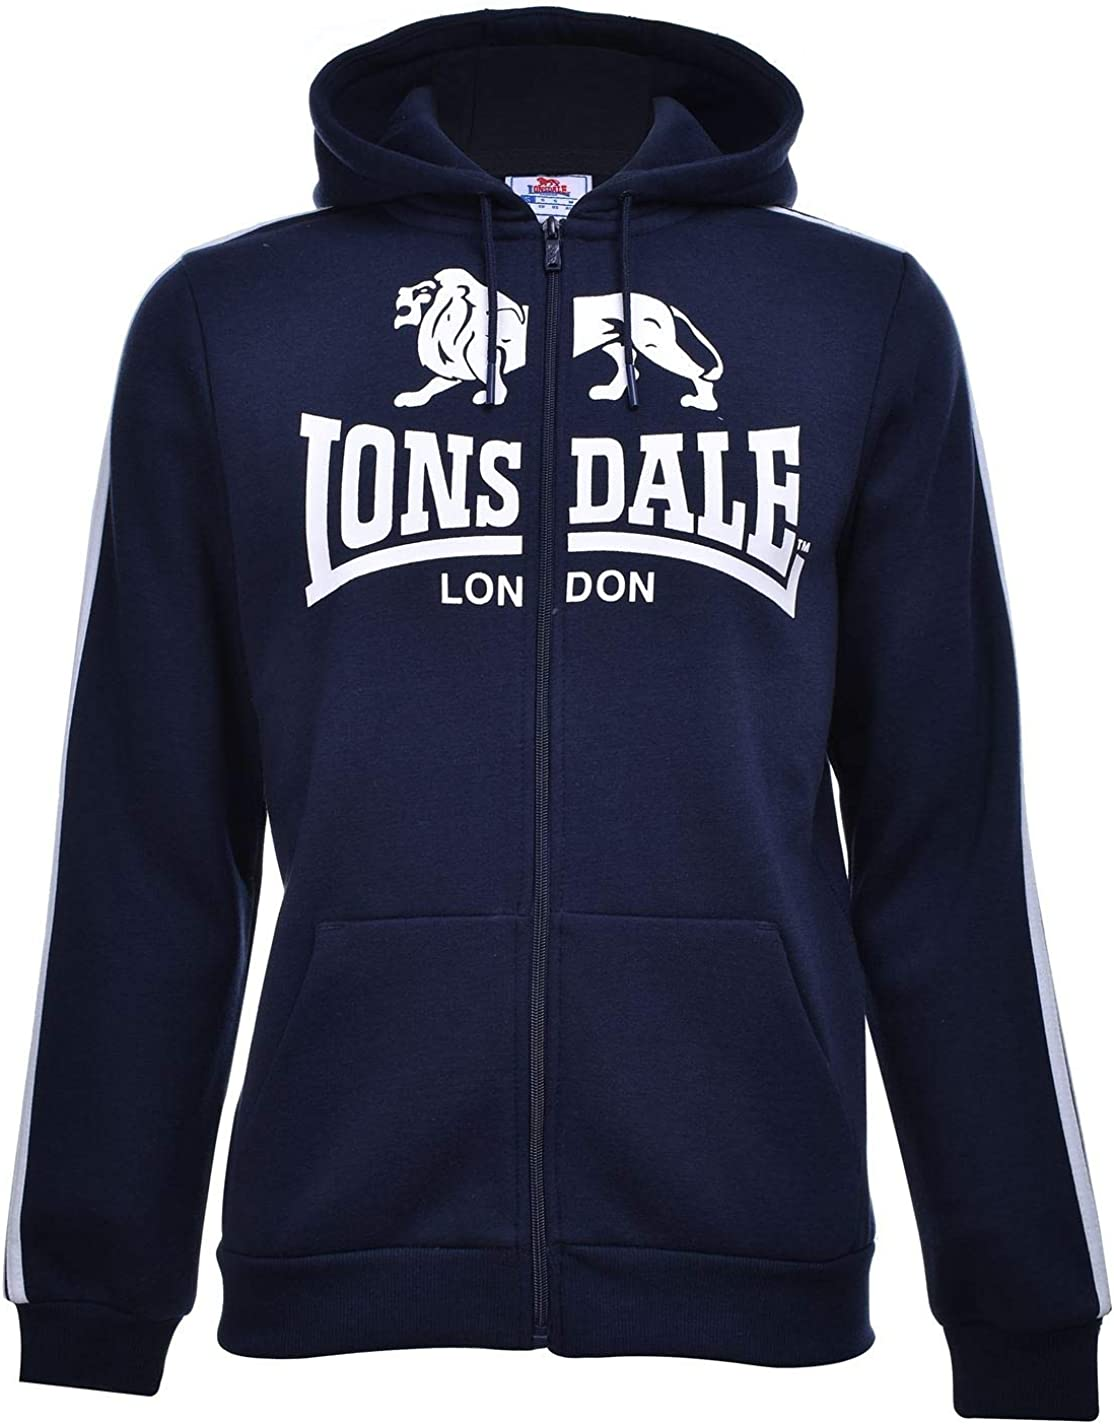 Mens Lonsdale Long Sleeves Soft Fleece Full Zip Hoodie Sizes from S to XXXXL